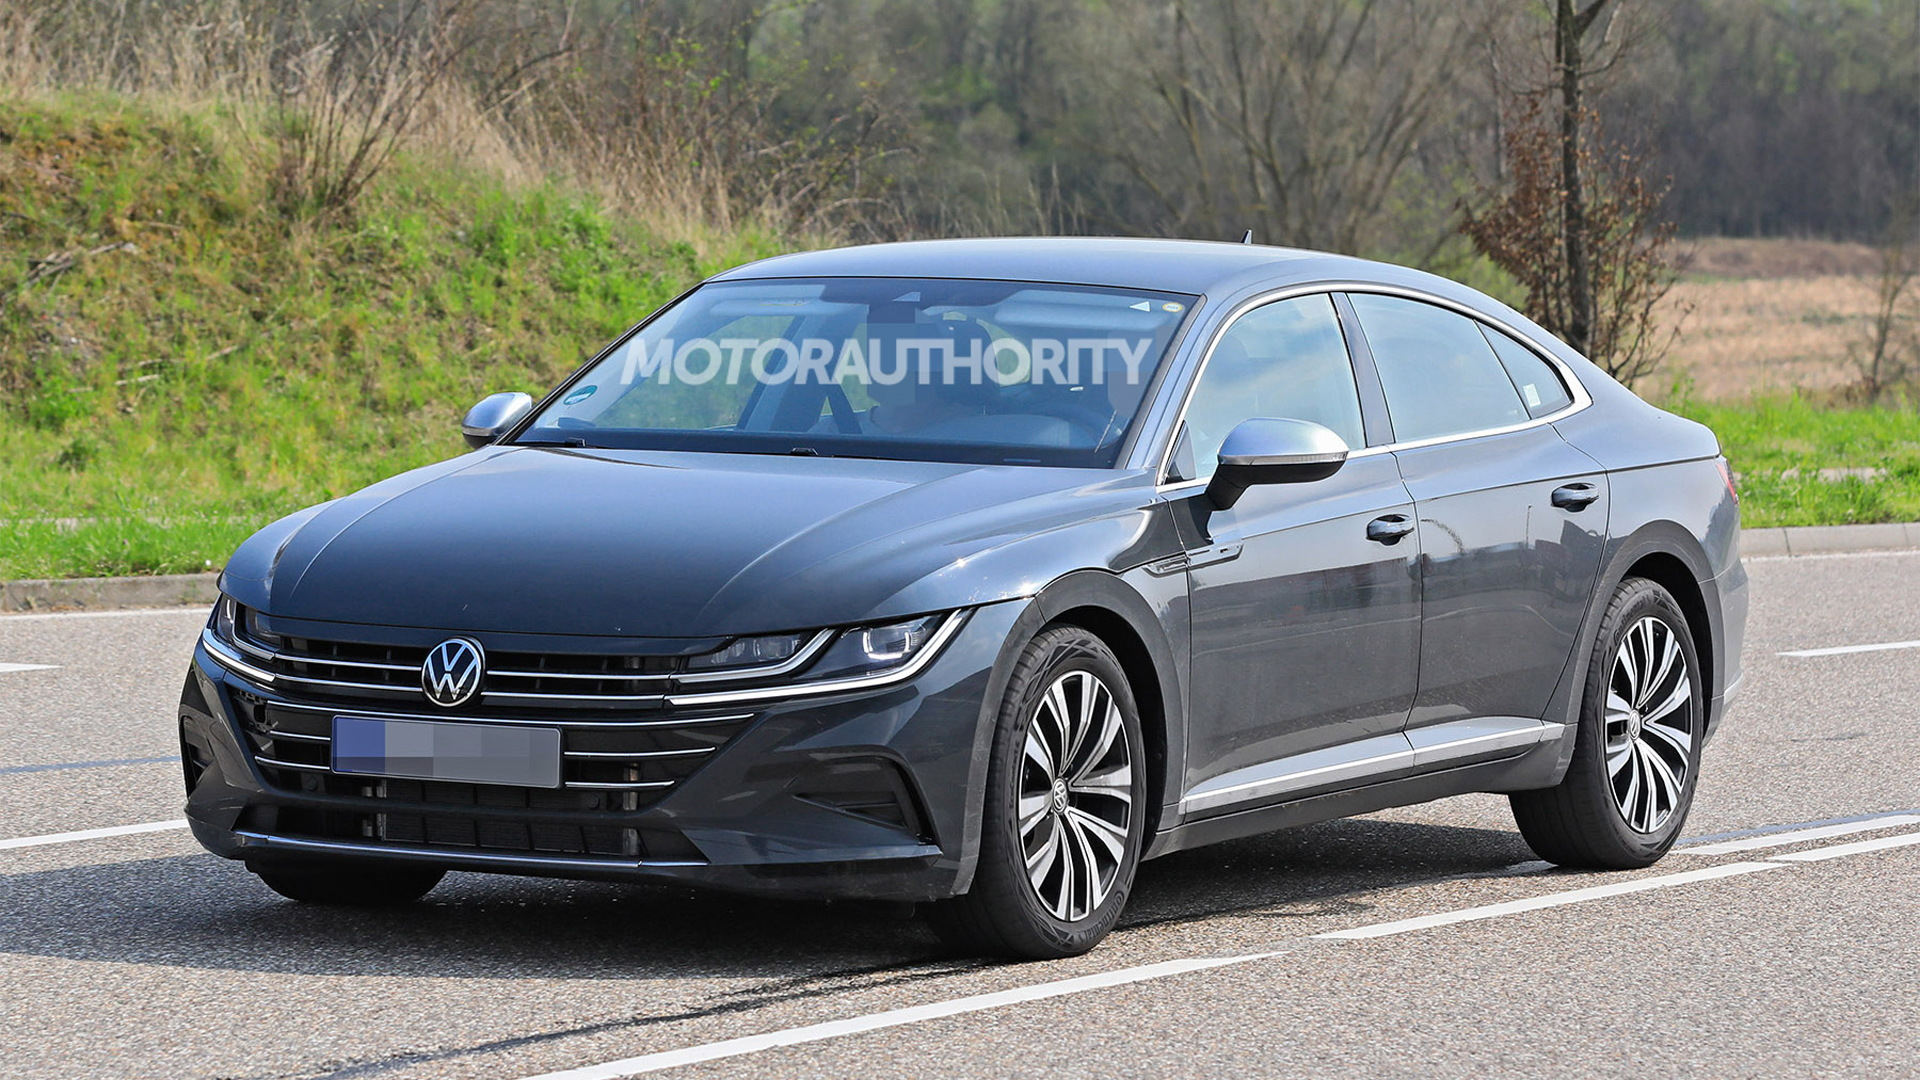 2021 Volkswagen Arteon facelift spy shots - Photo credit: S. Baldauf/SB-Medien